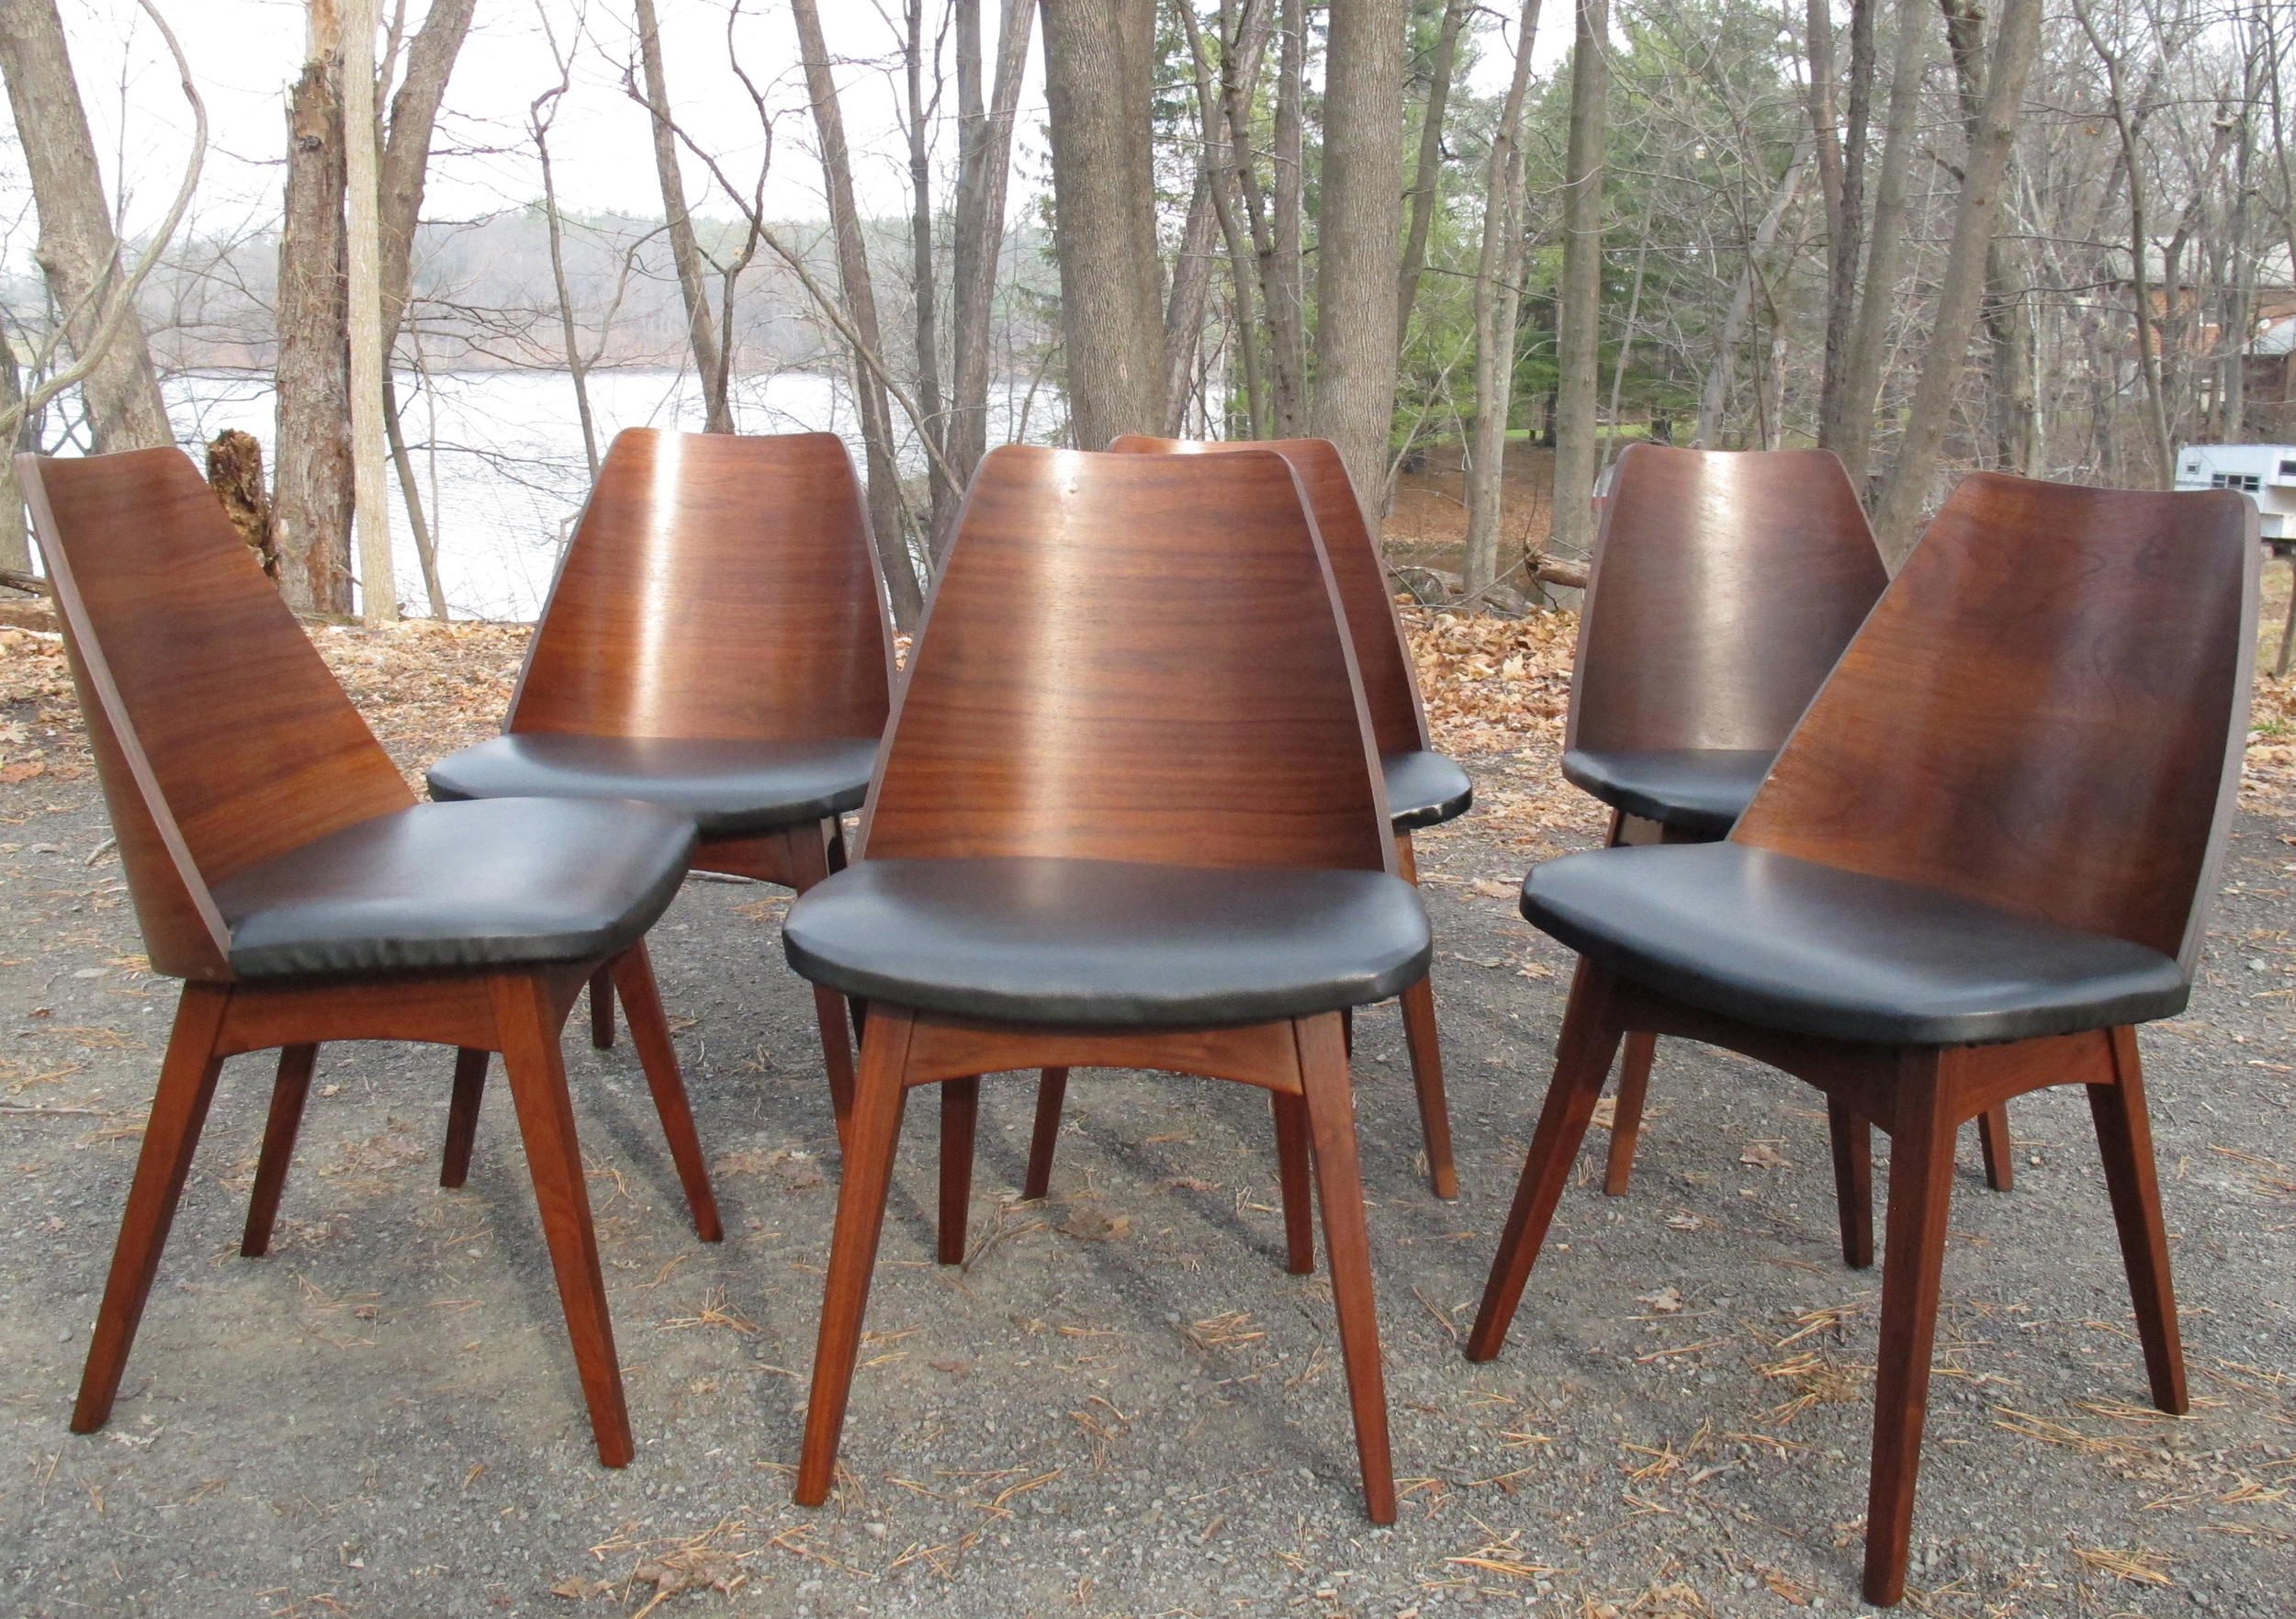 SET OF MID CENTURY WALNUT DINING CHAIRS BY FOSTER MCDAVID